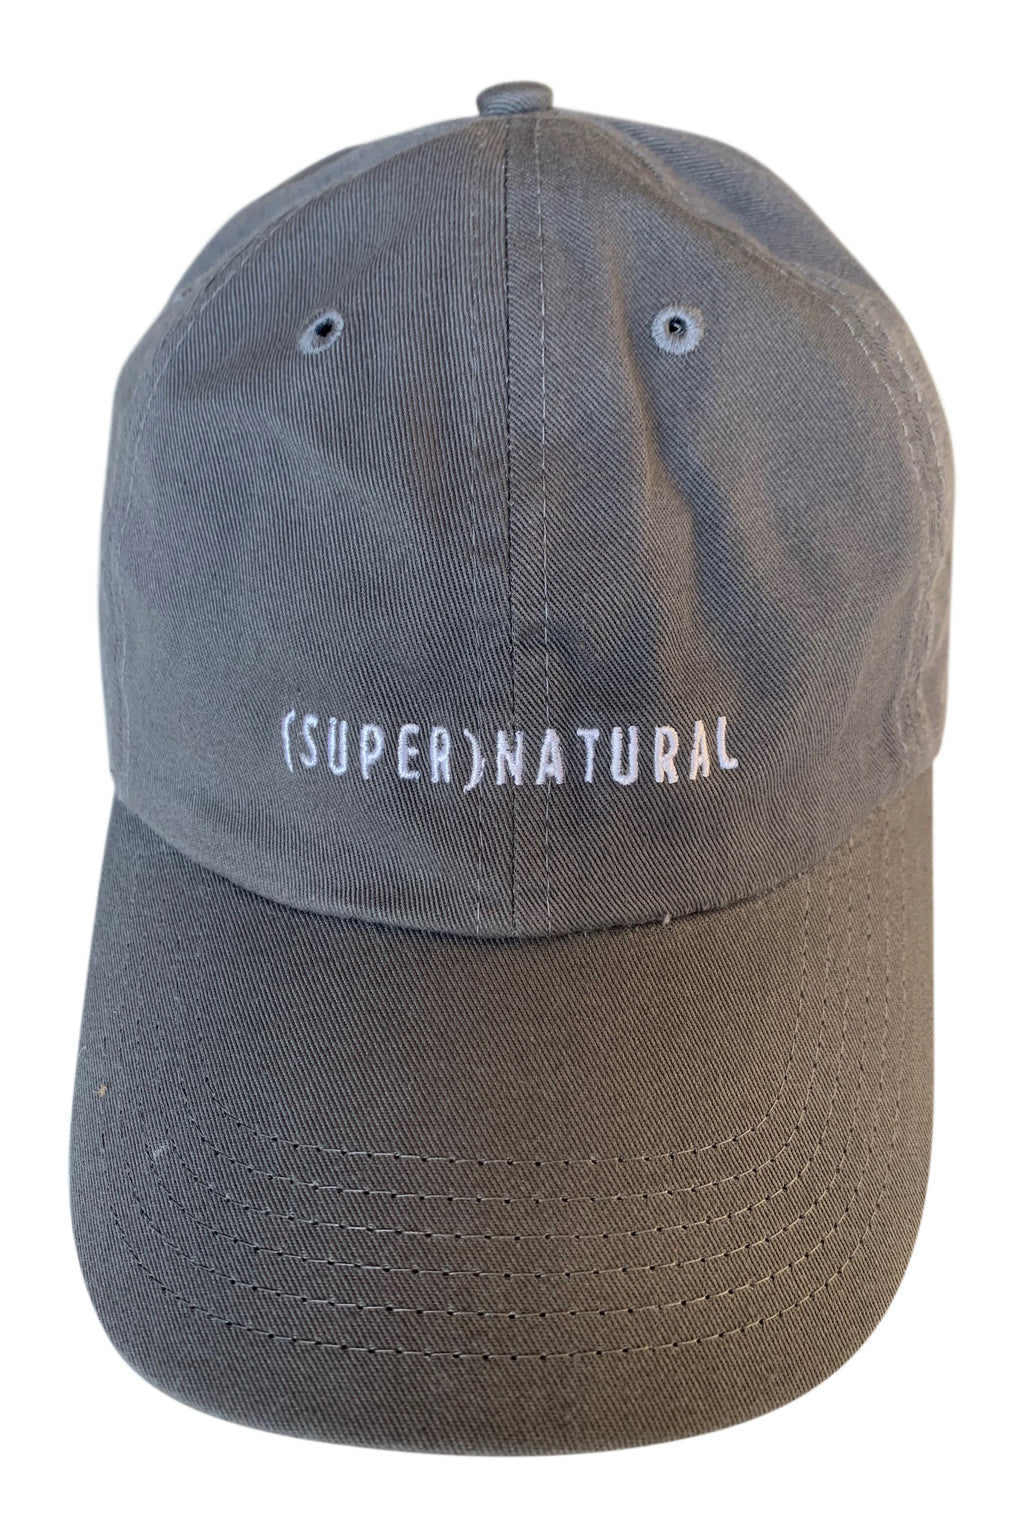 SUPERNATURAL HAT STONE